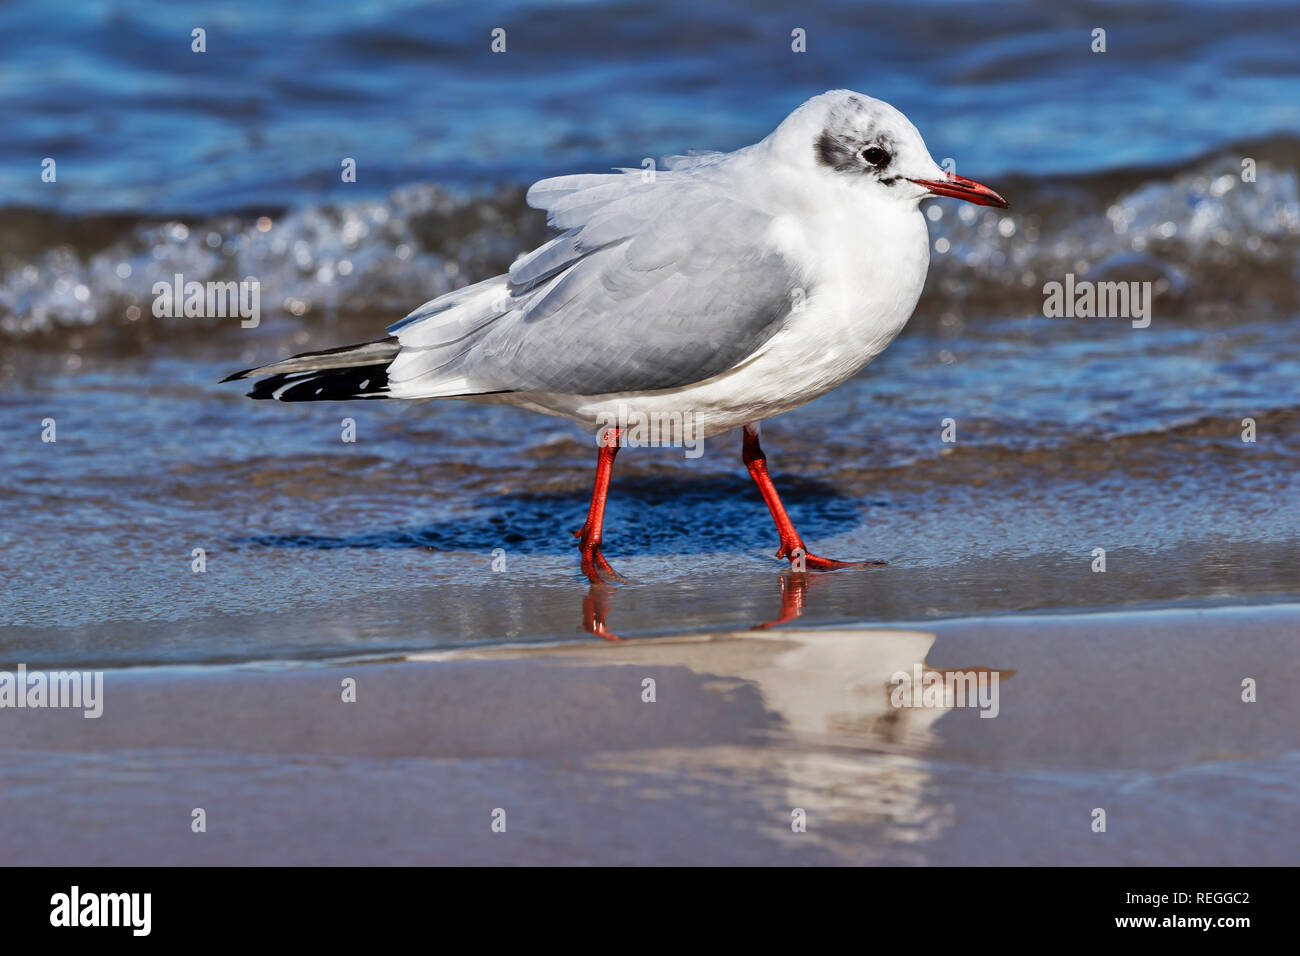 Detail view of a Black-headed gull in winter plumage at the beach of the Baltic Sea in Kolobrzeg, West Pomeranian, Poland, Europe - Stock Image